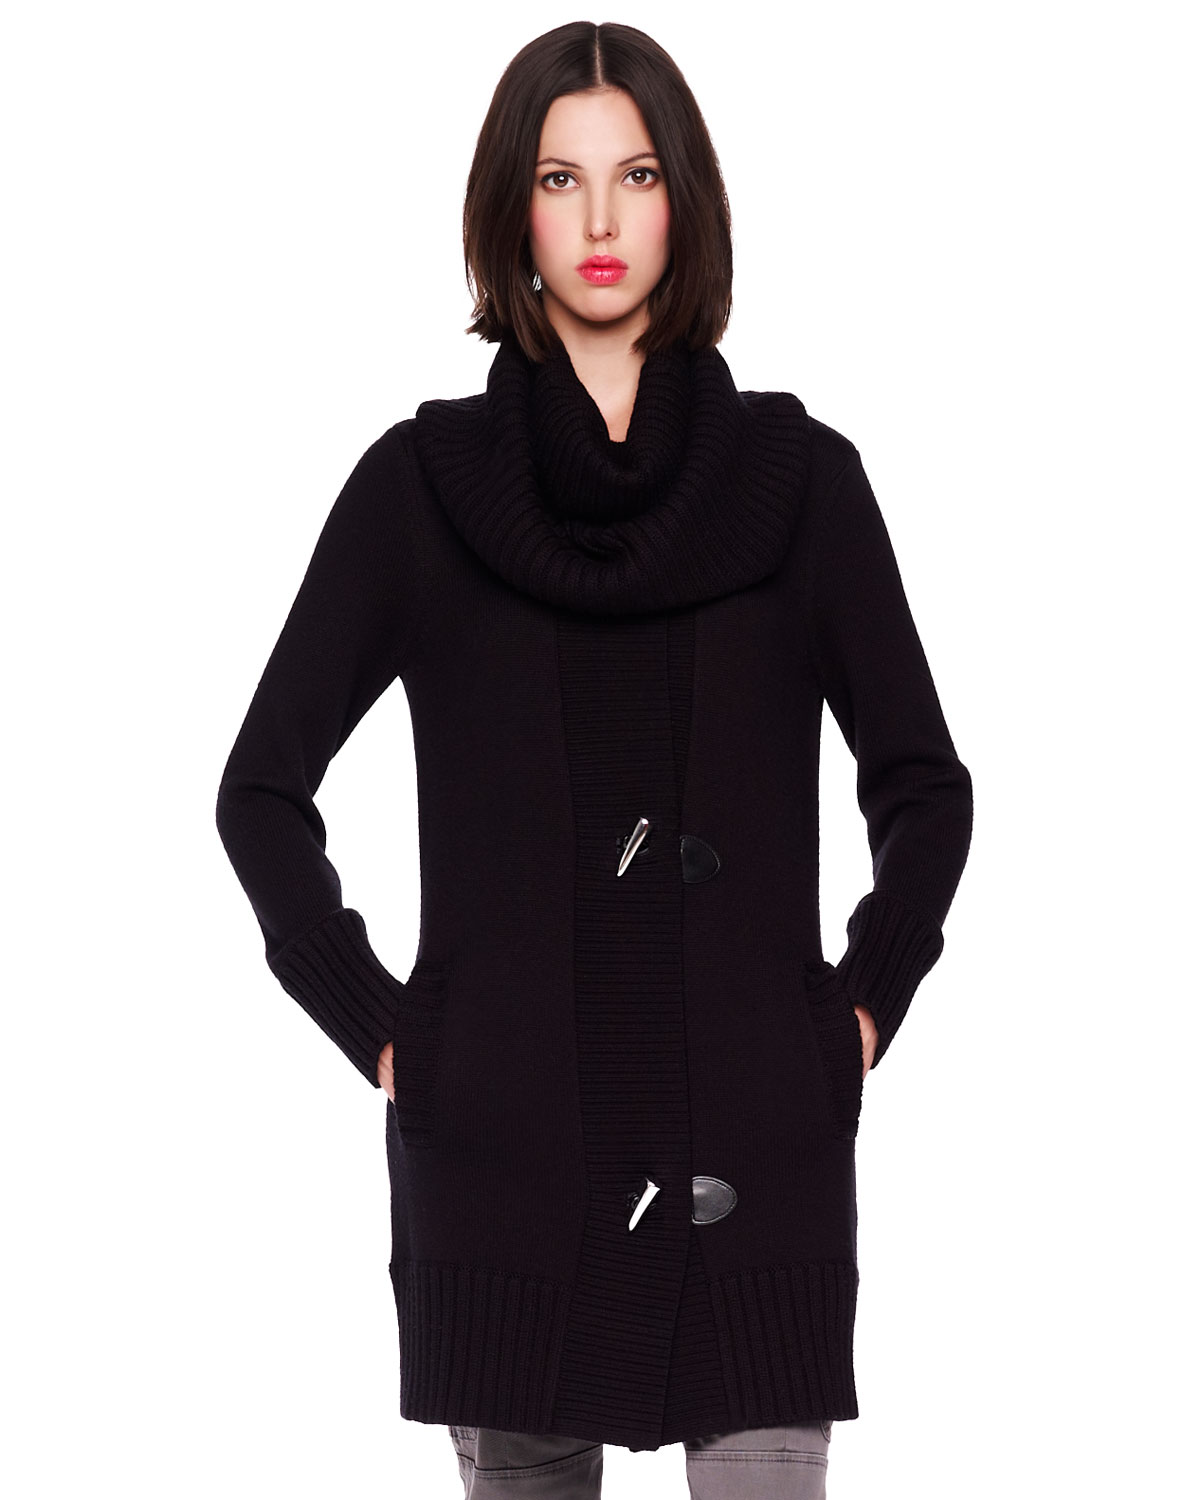 Michael kors Sweater Coat in Black | Lyst